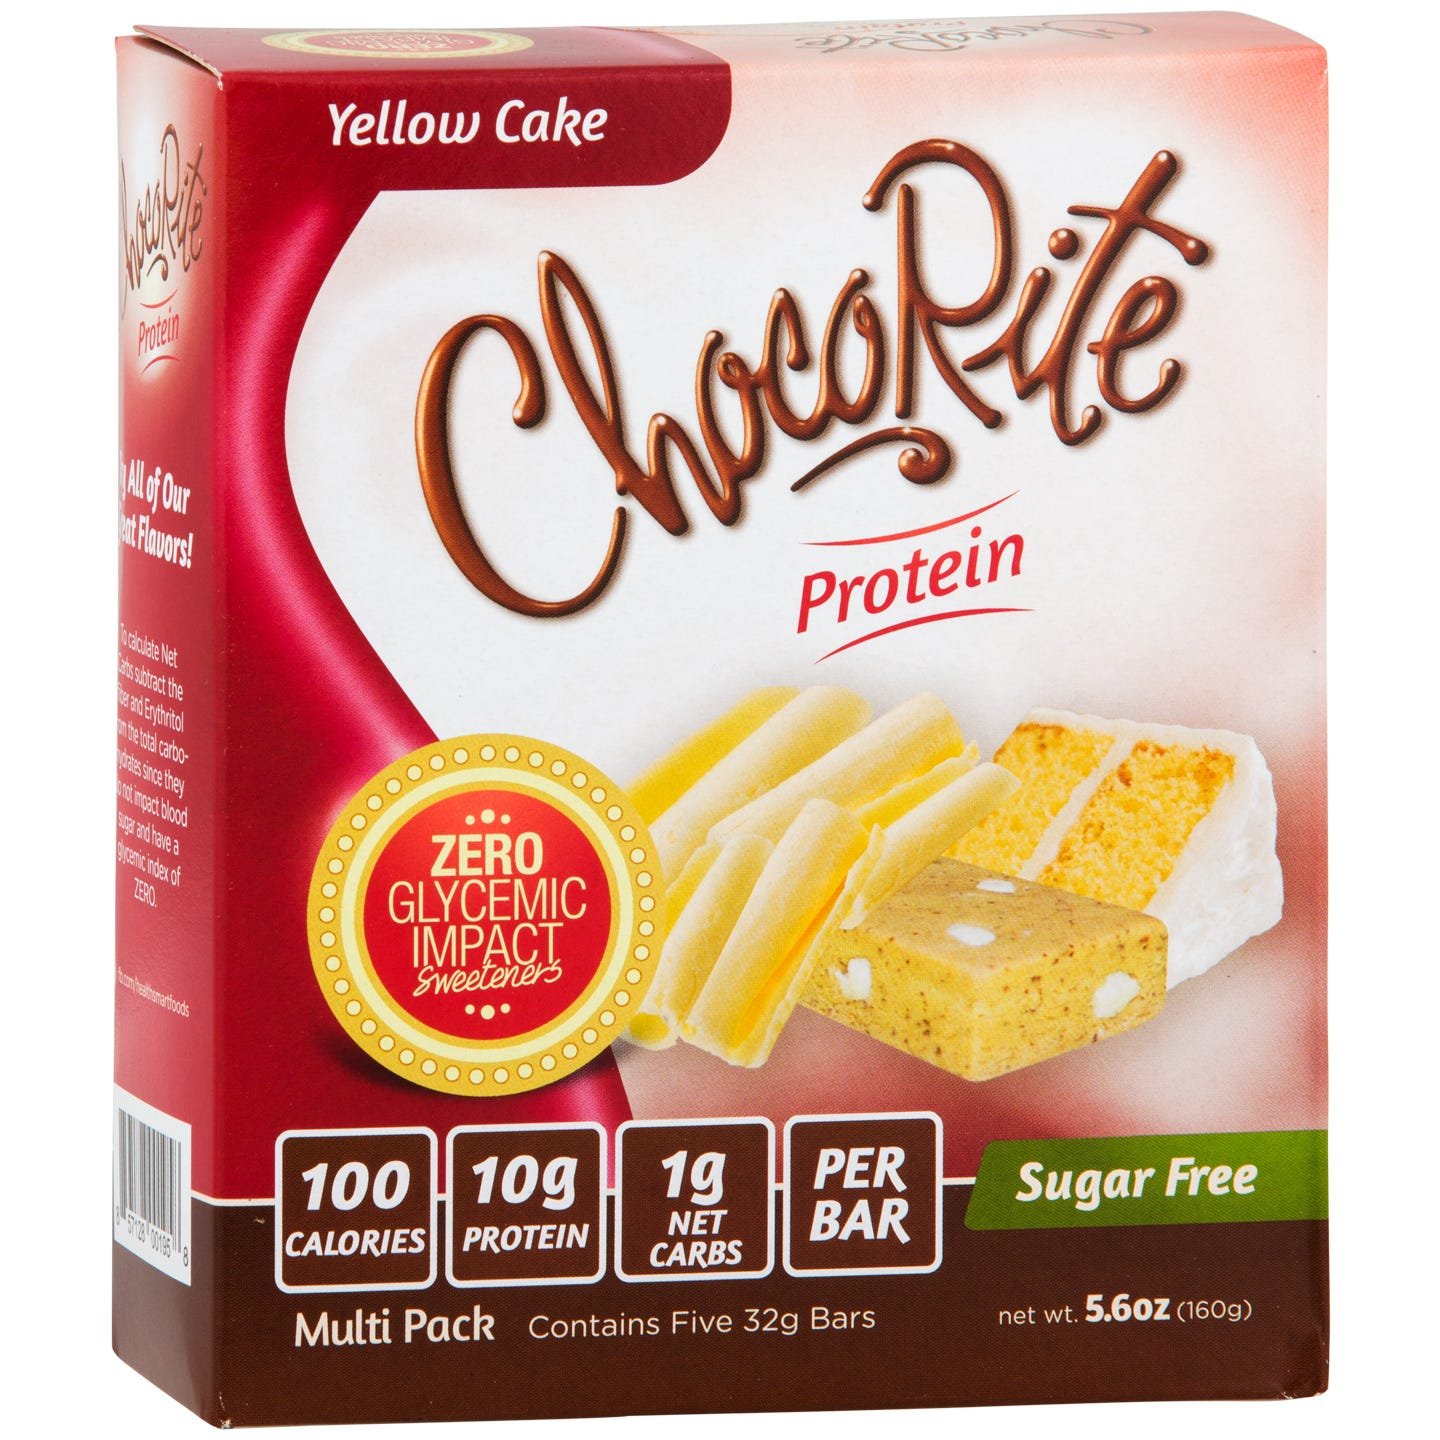 Sugar Free Protein Bar, Yellow Cake (5 Bars) - ChocoRite - Rapid Diet Weight Loss Products Shop